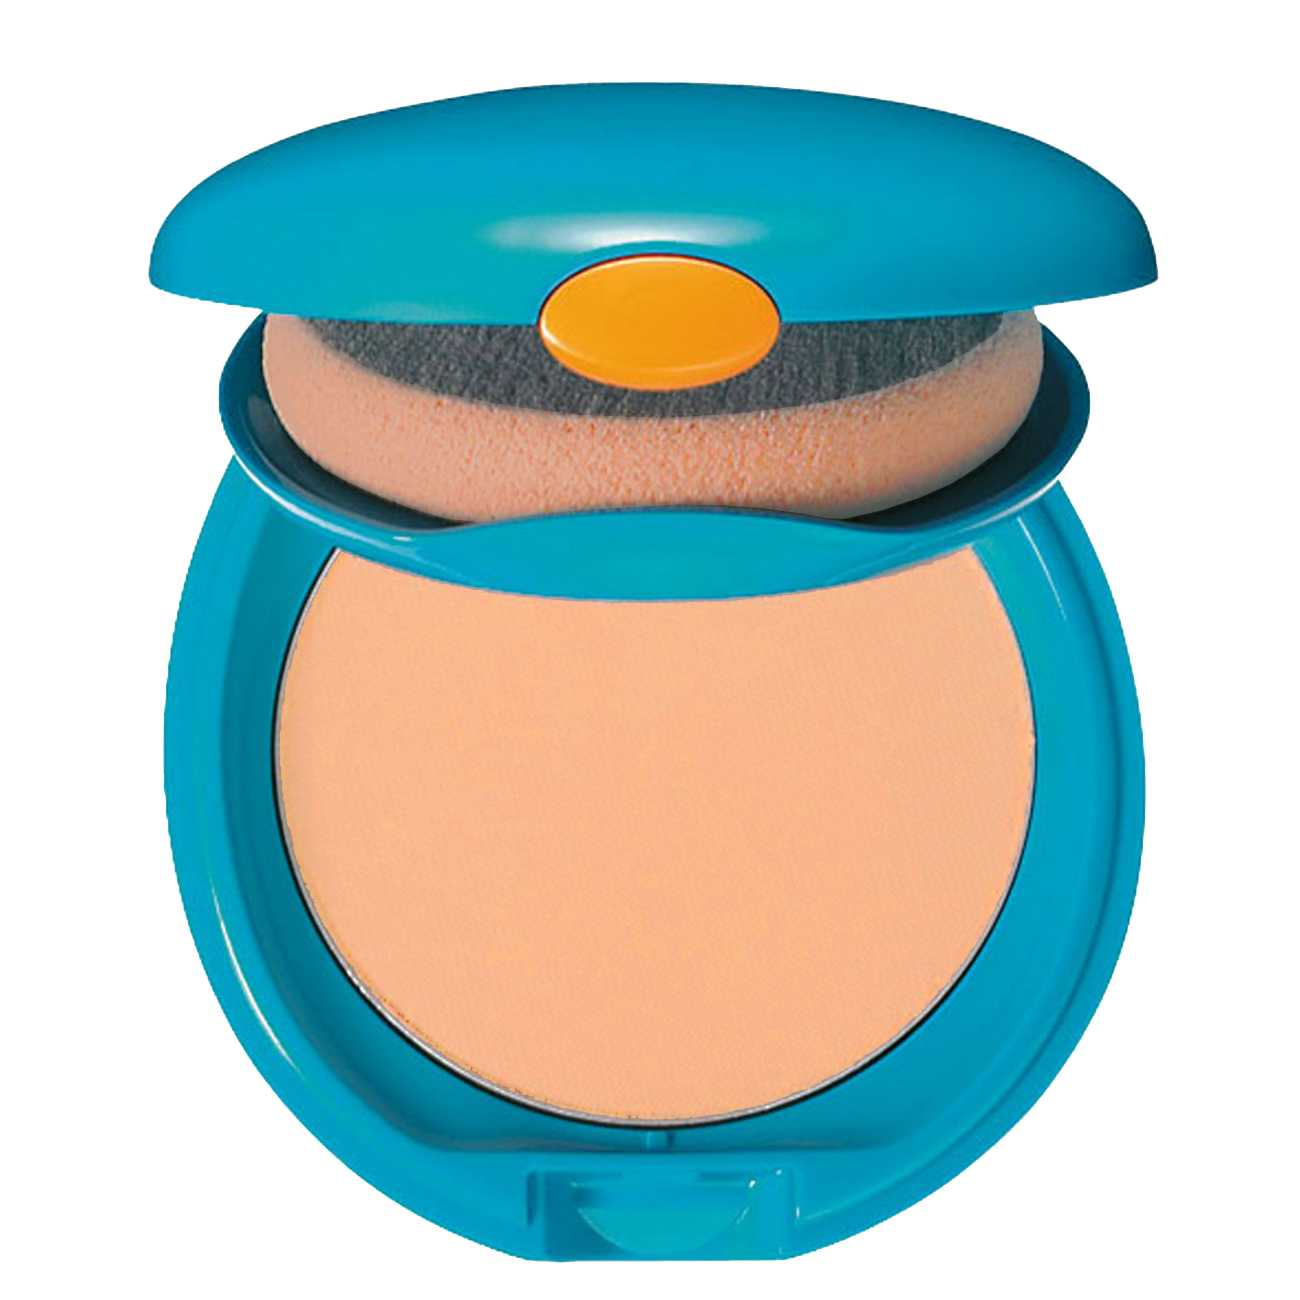 Uv Protective Compact Foundation 12 G Light Beige